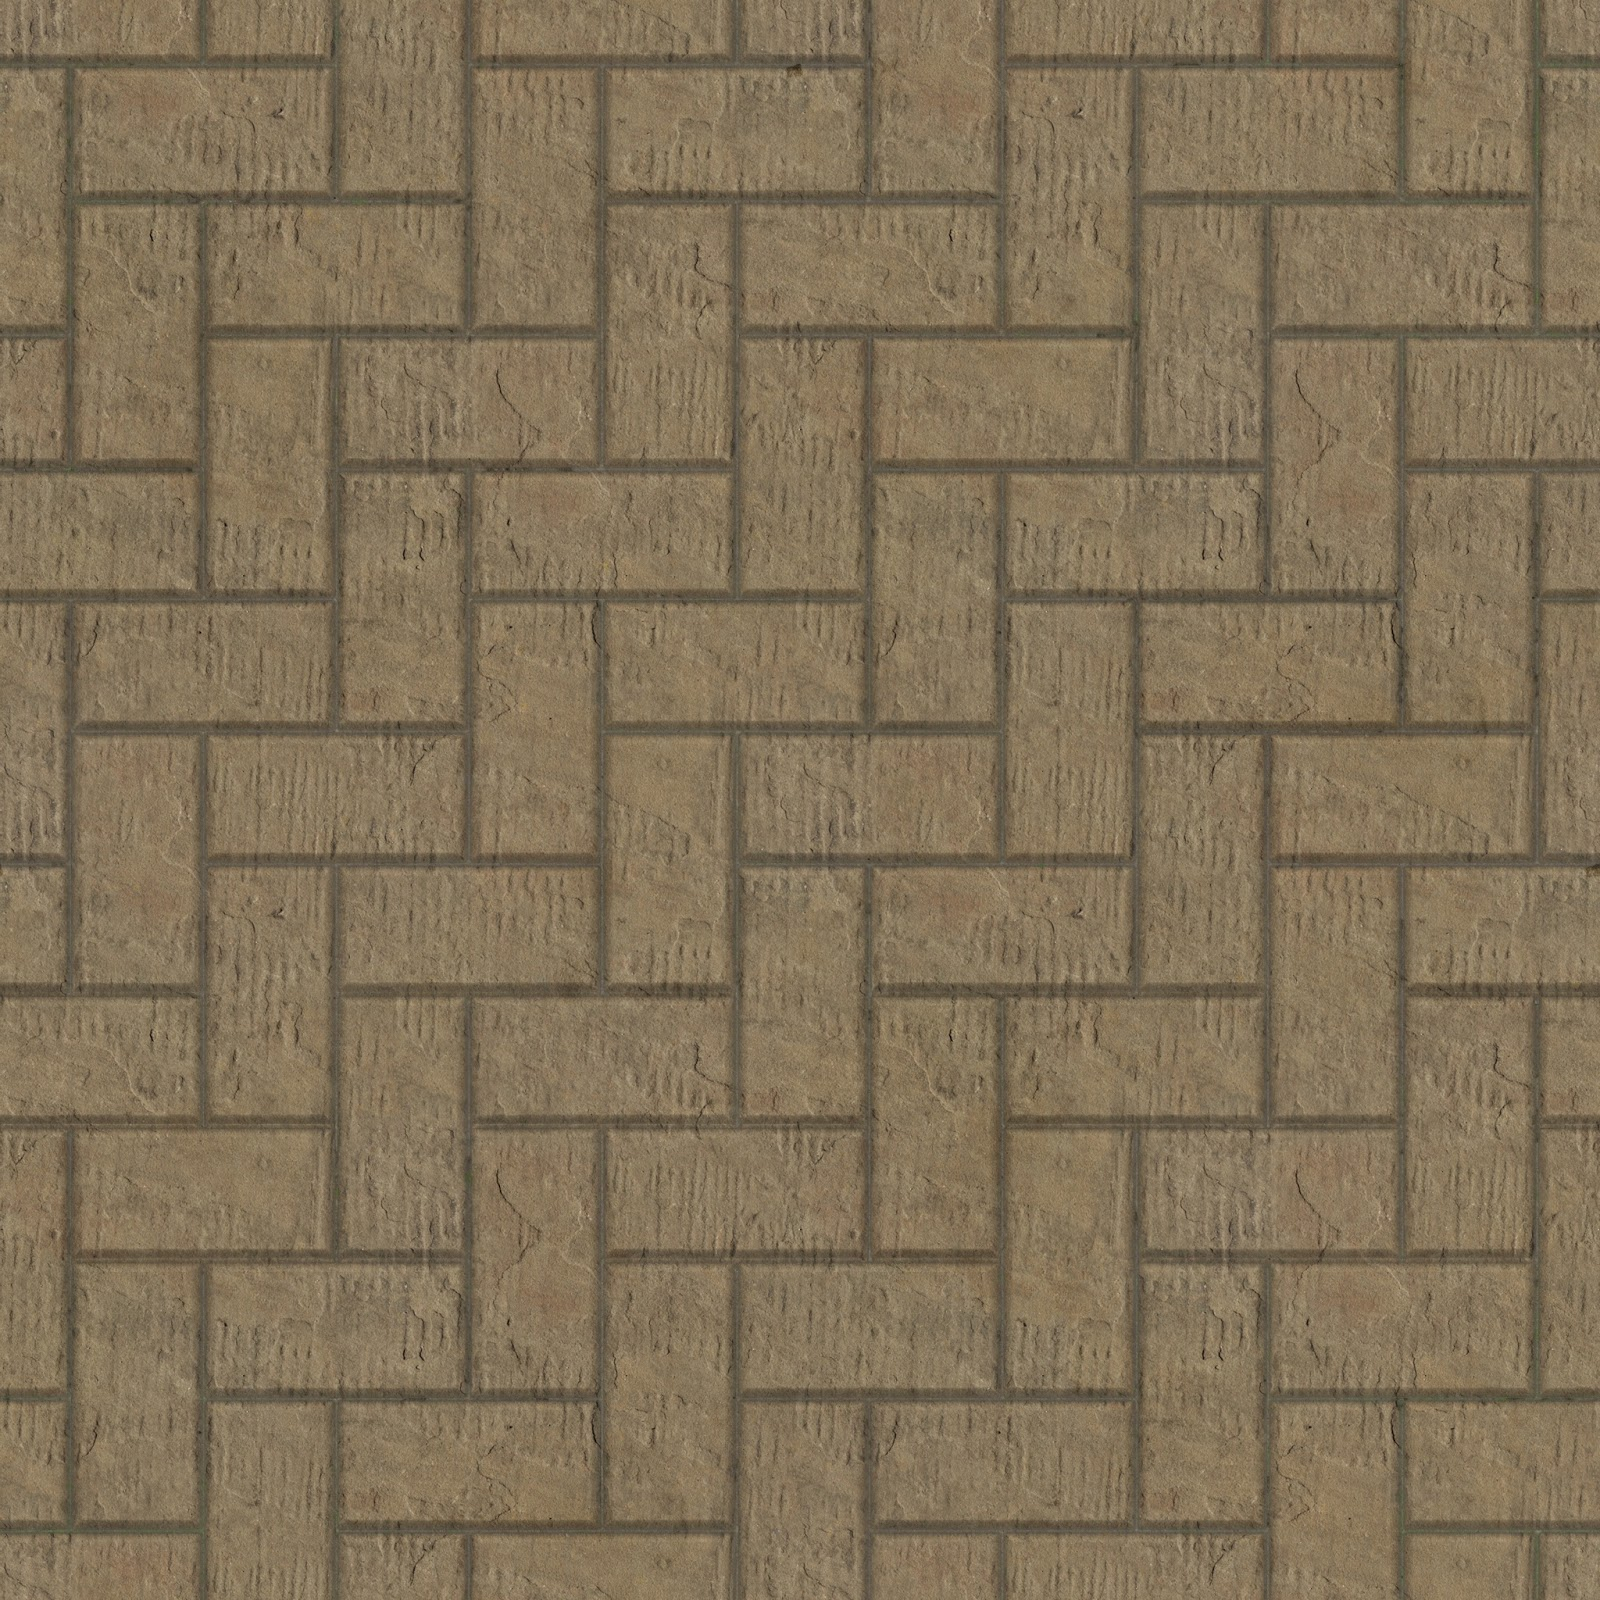 Brick stone floor pavement seamless texture 2048x2048